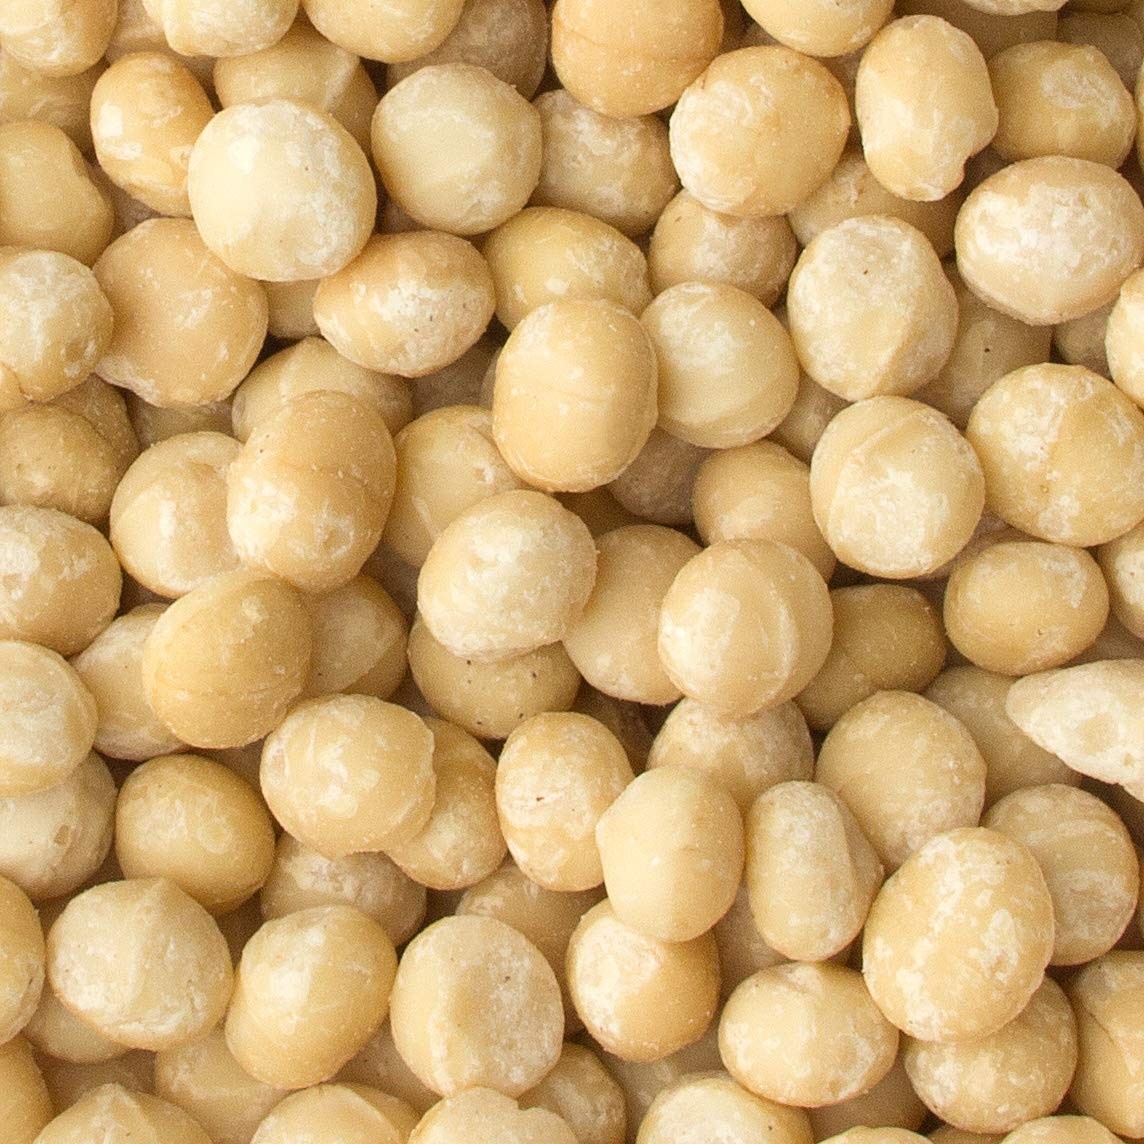 Macadamia Nuts Raw Unsalted - Large Hawaiian Raw Macadamias, Heart Healthy Snack 1 LB BAG - Oh! Nuts by oh! Nuts (Image #2)